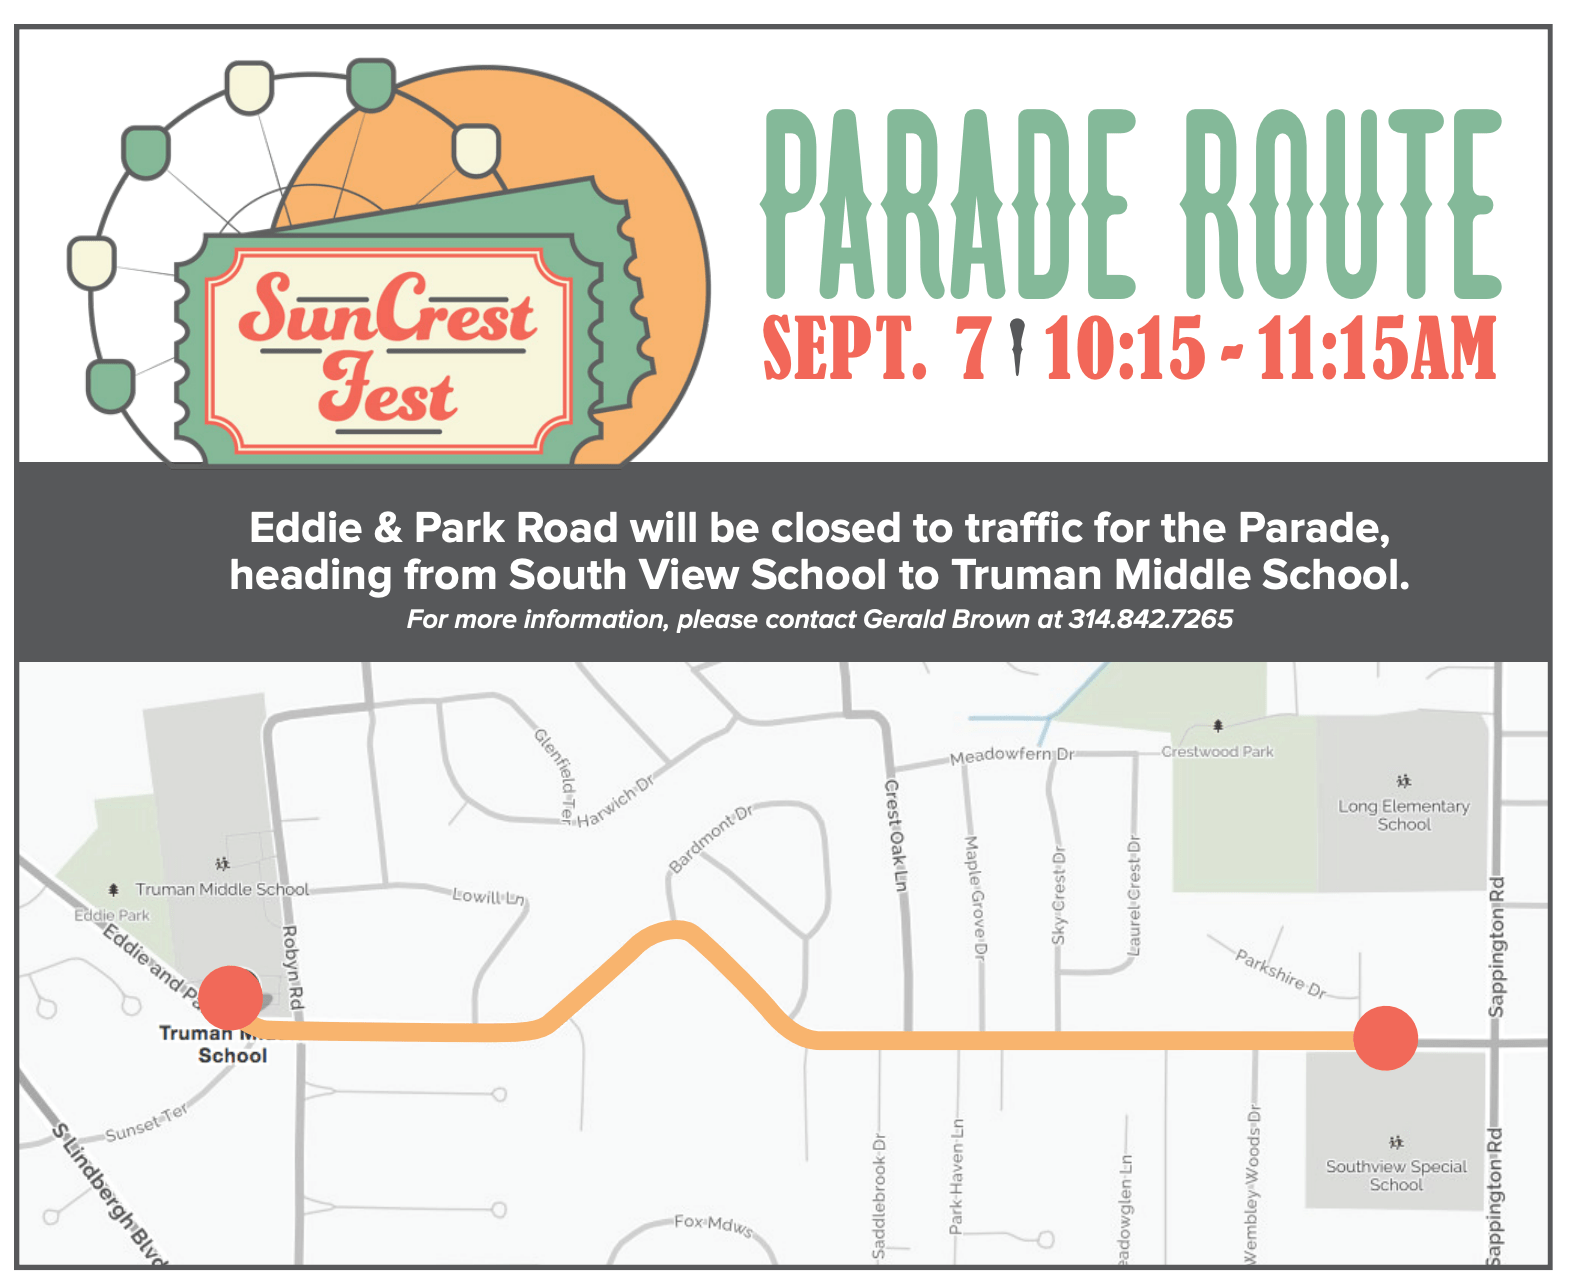 Suncrest Fest Parade Route.png